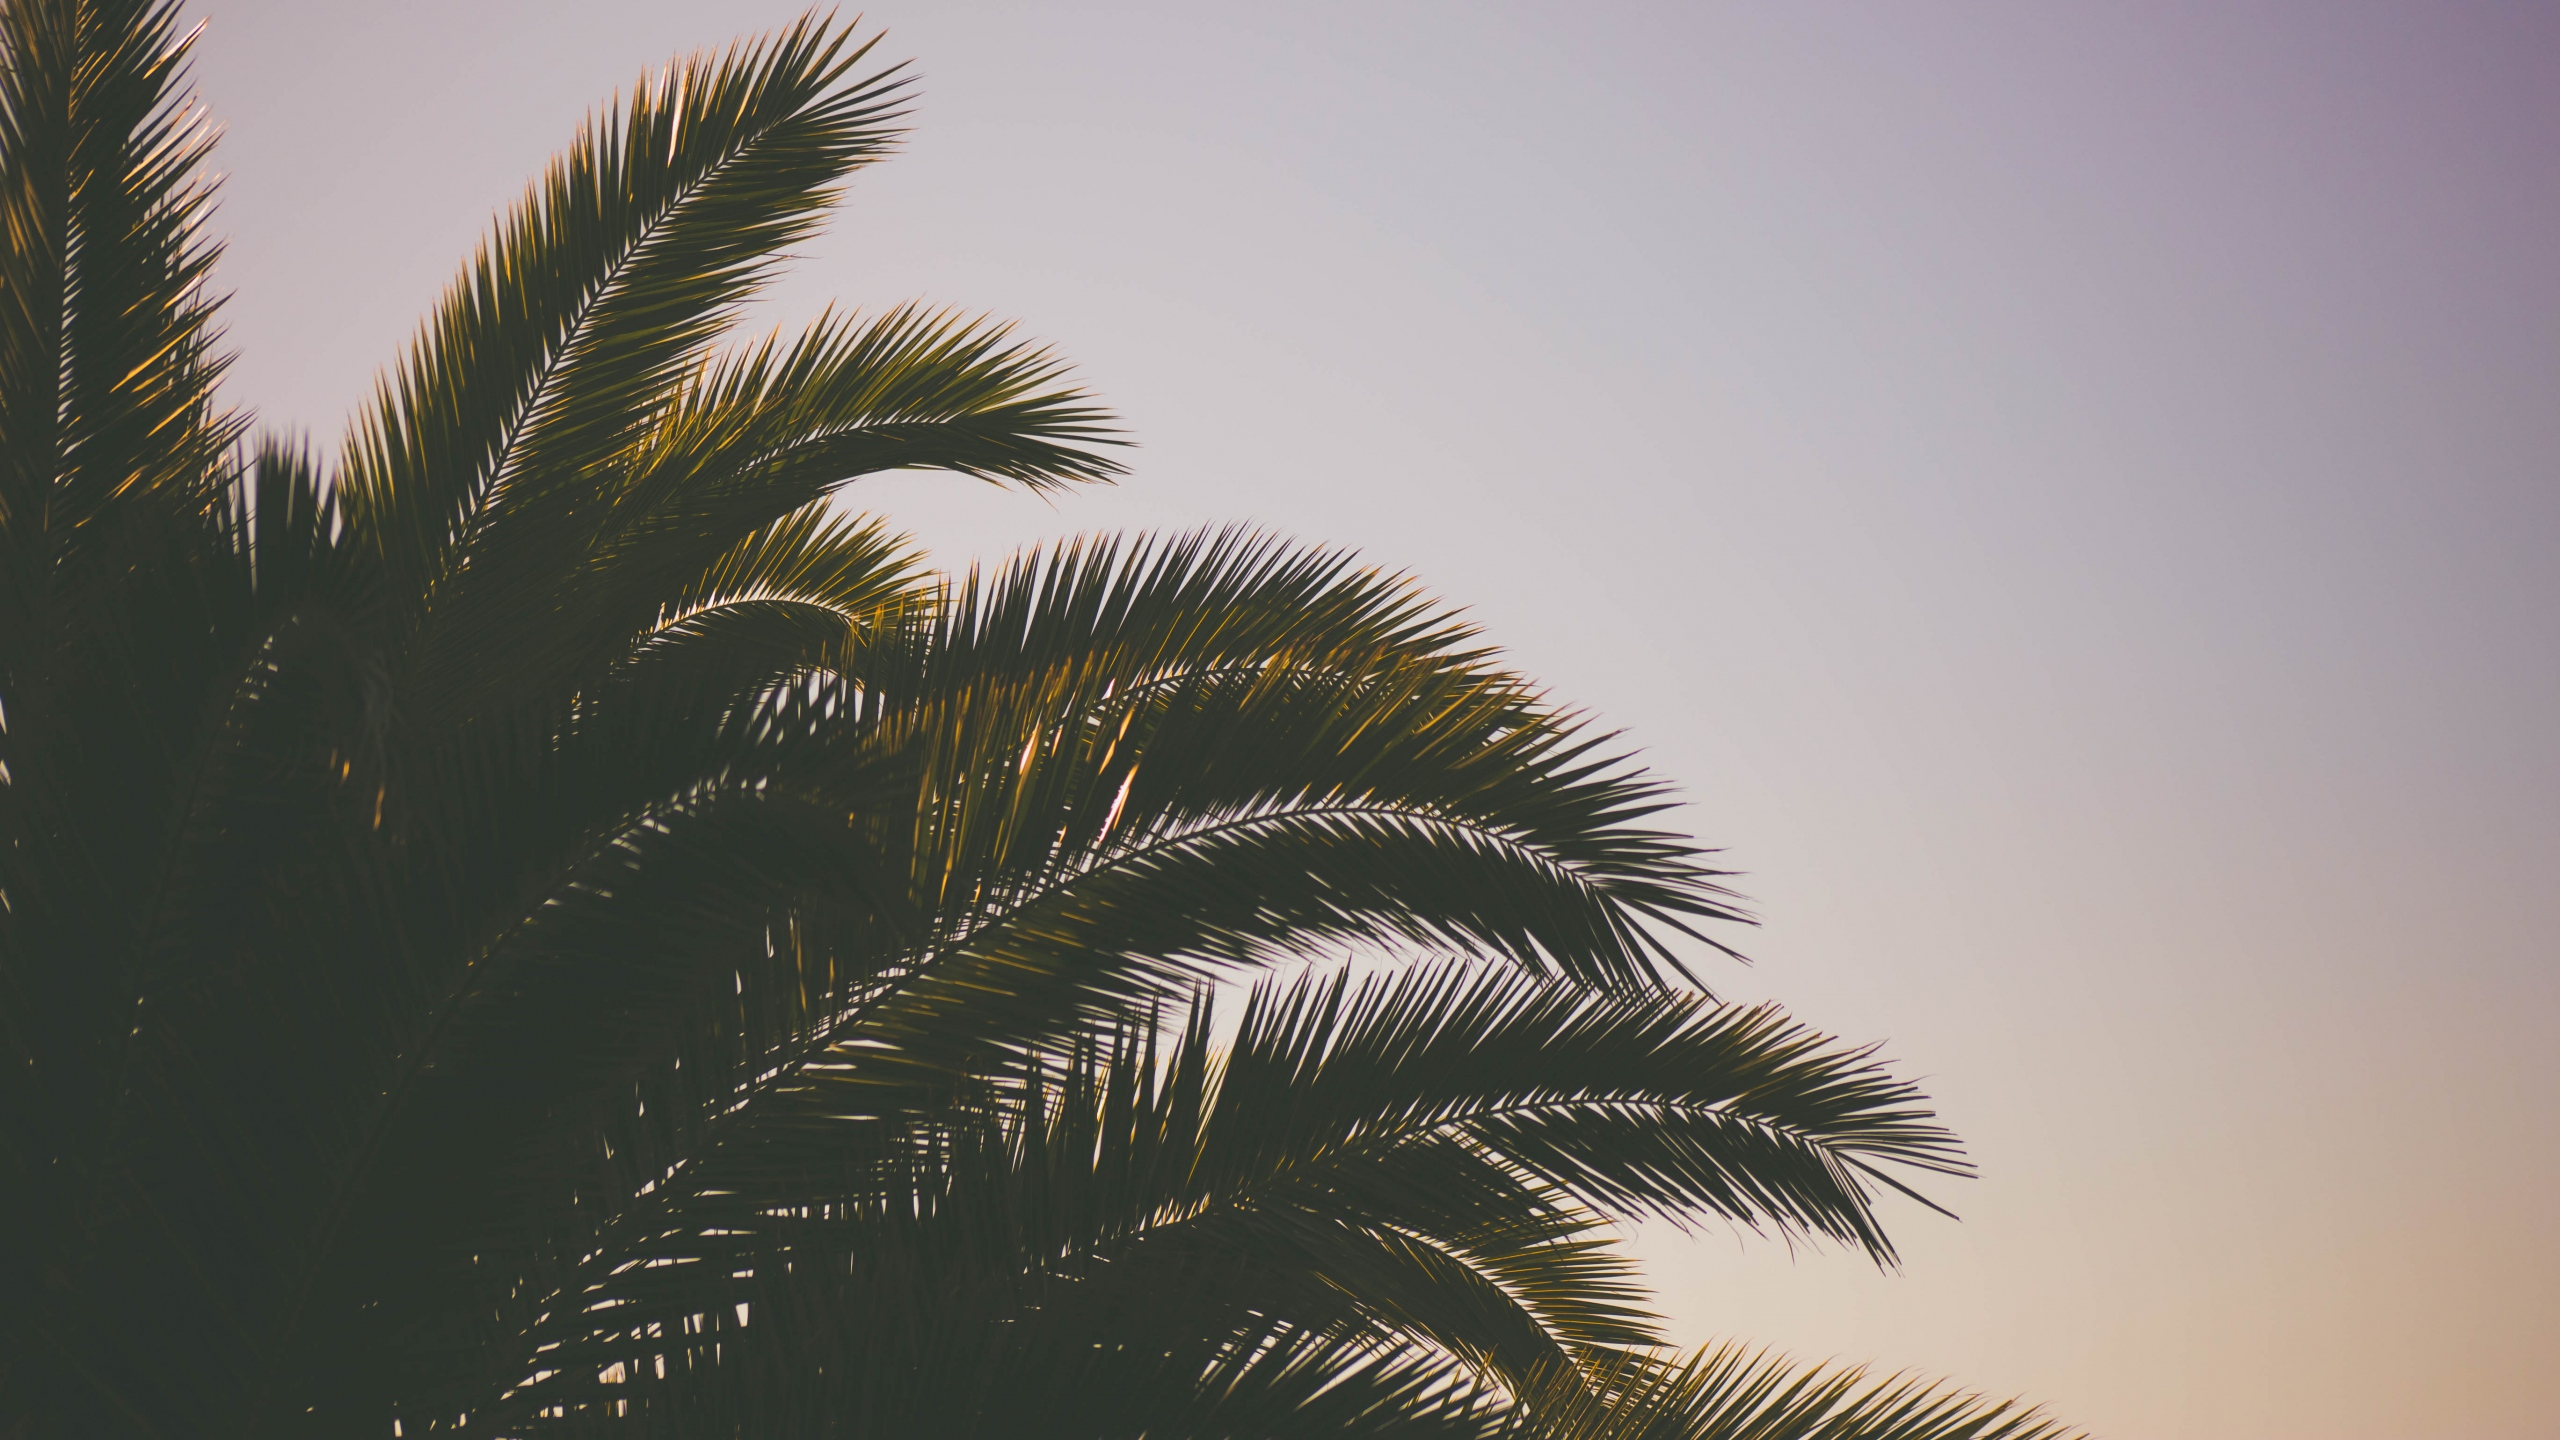 Popular Wallpaper Mac Palm Tree - palm-tree-branches-sky_wallpapers_54121_2560x1440  Picture_715037.jpg